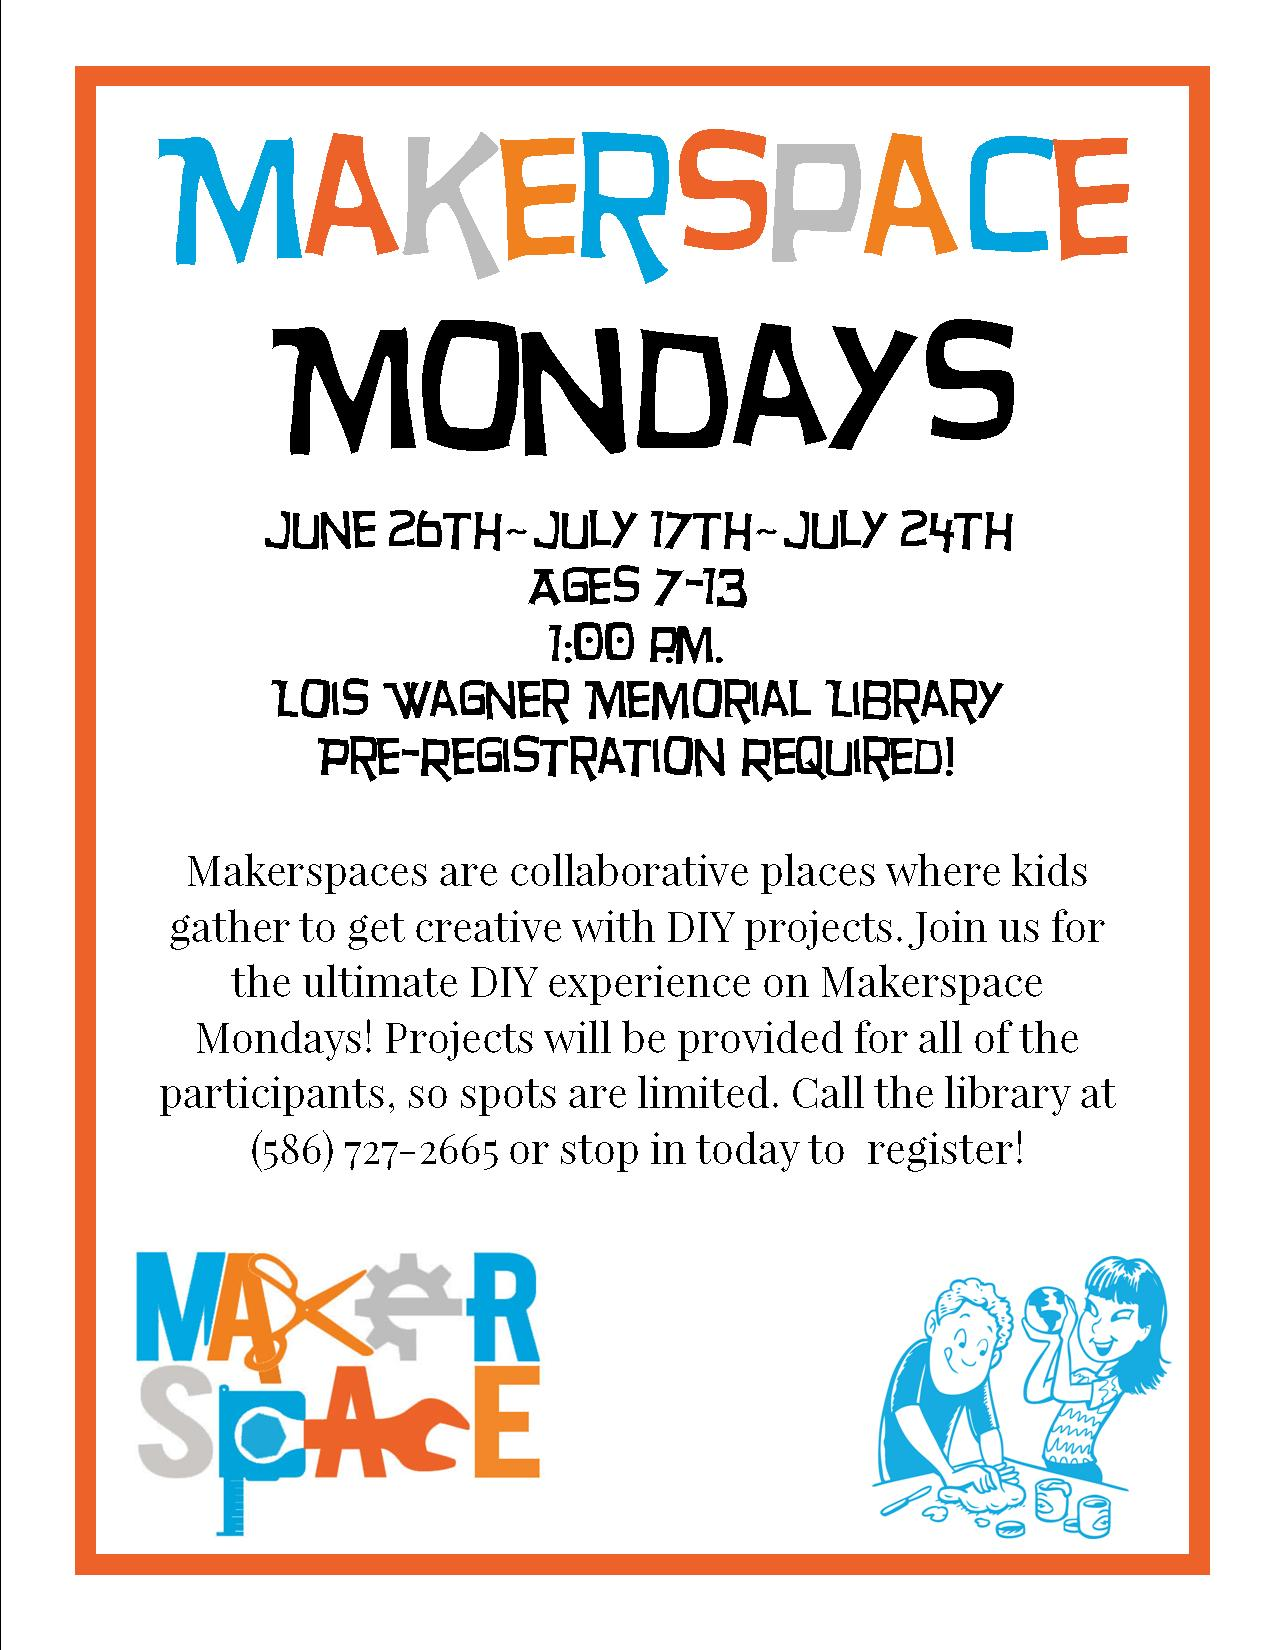 Makerspace Mondays